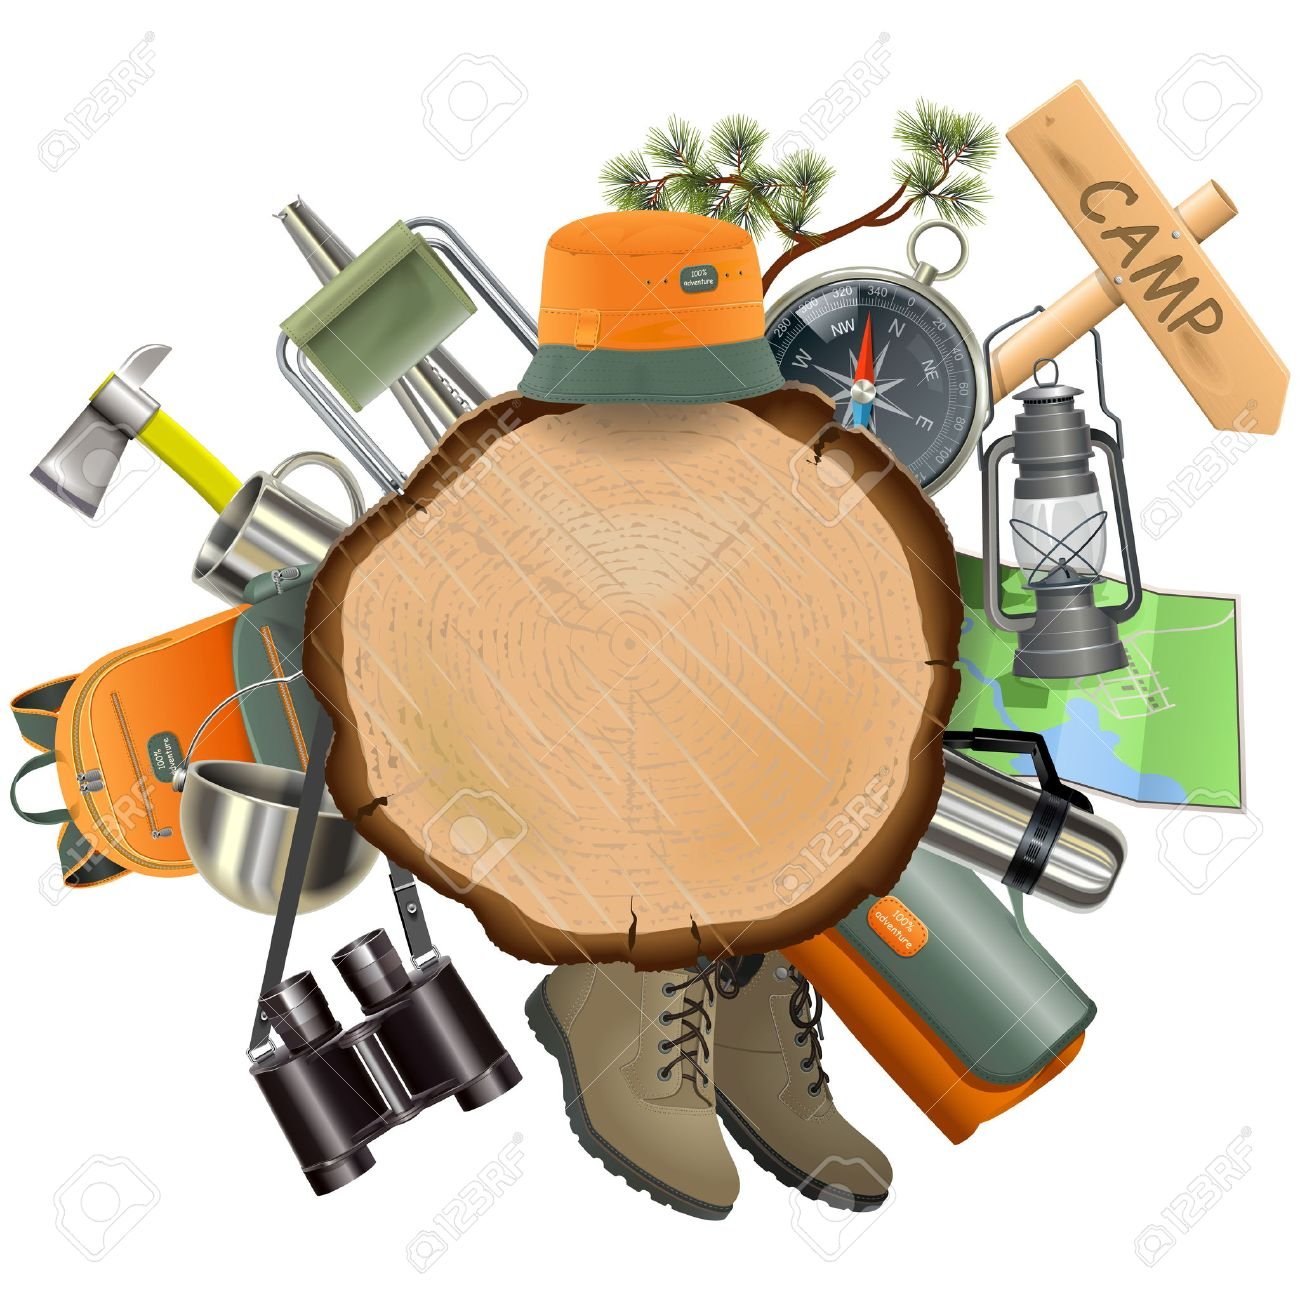 Wooden Board with Camping Accessories isolated on white background - 51504725